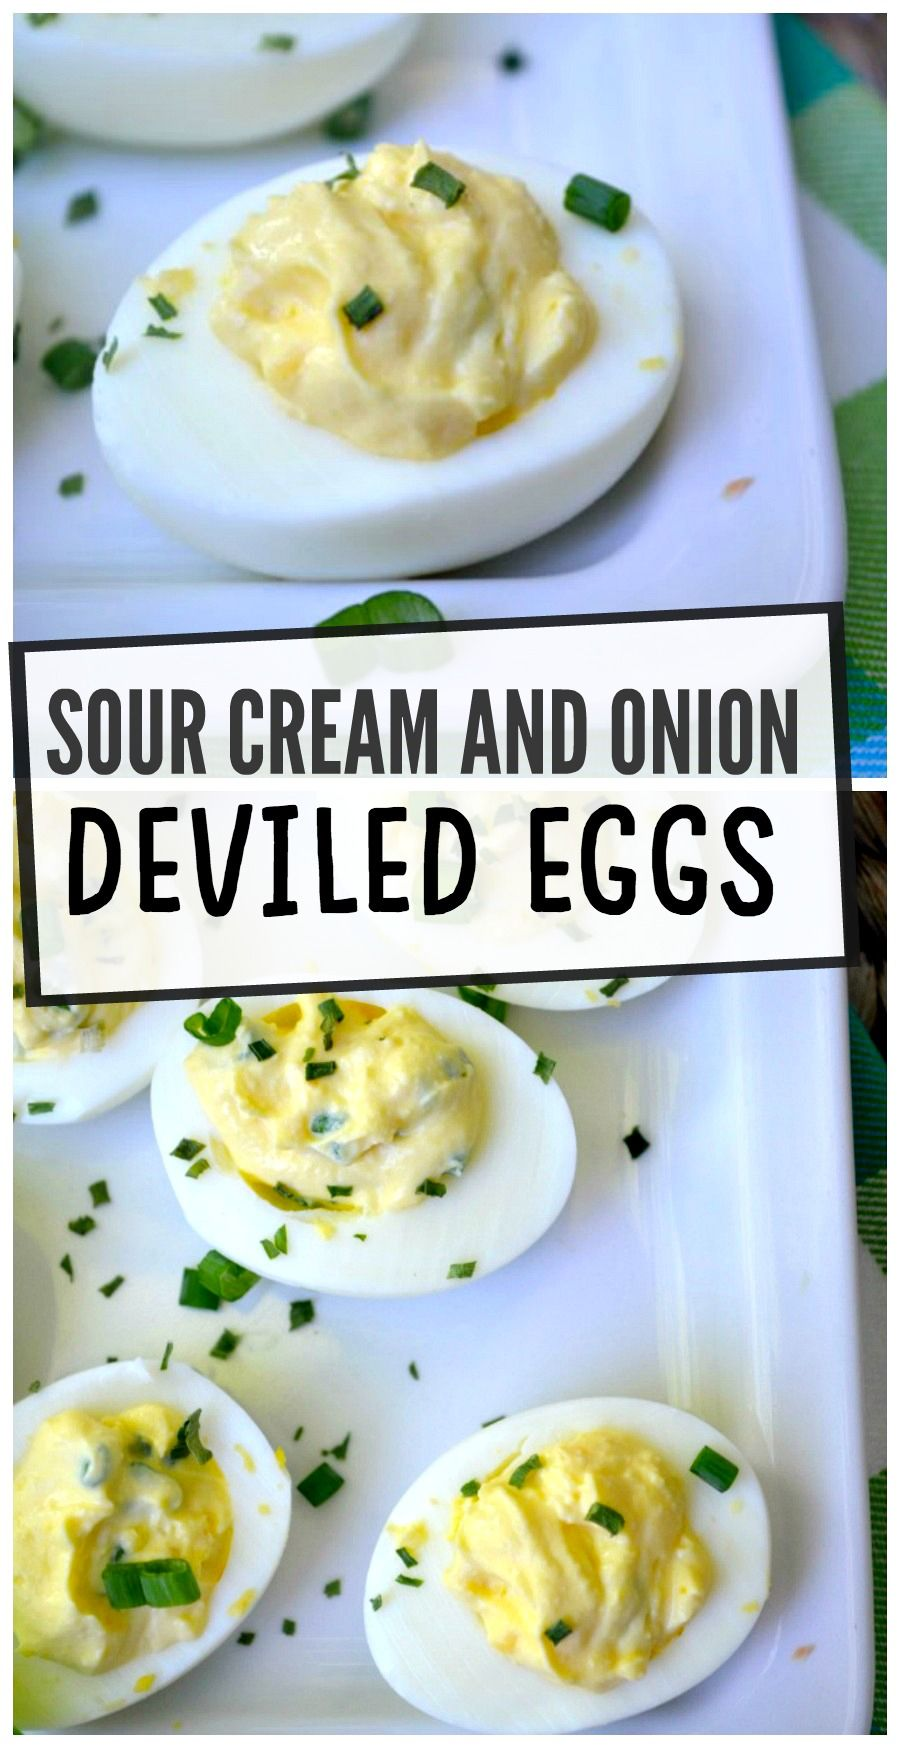 Sour Cream And Onion Deviled Eggs In 2020 Appetizer Recipes Sour Cream And Onion Chicken Appetizers